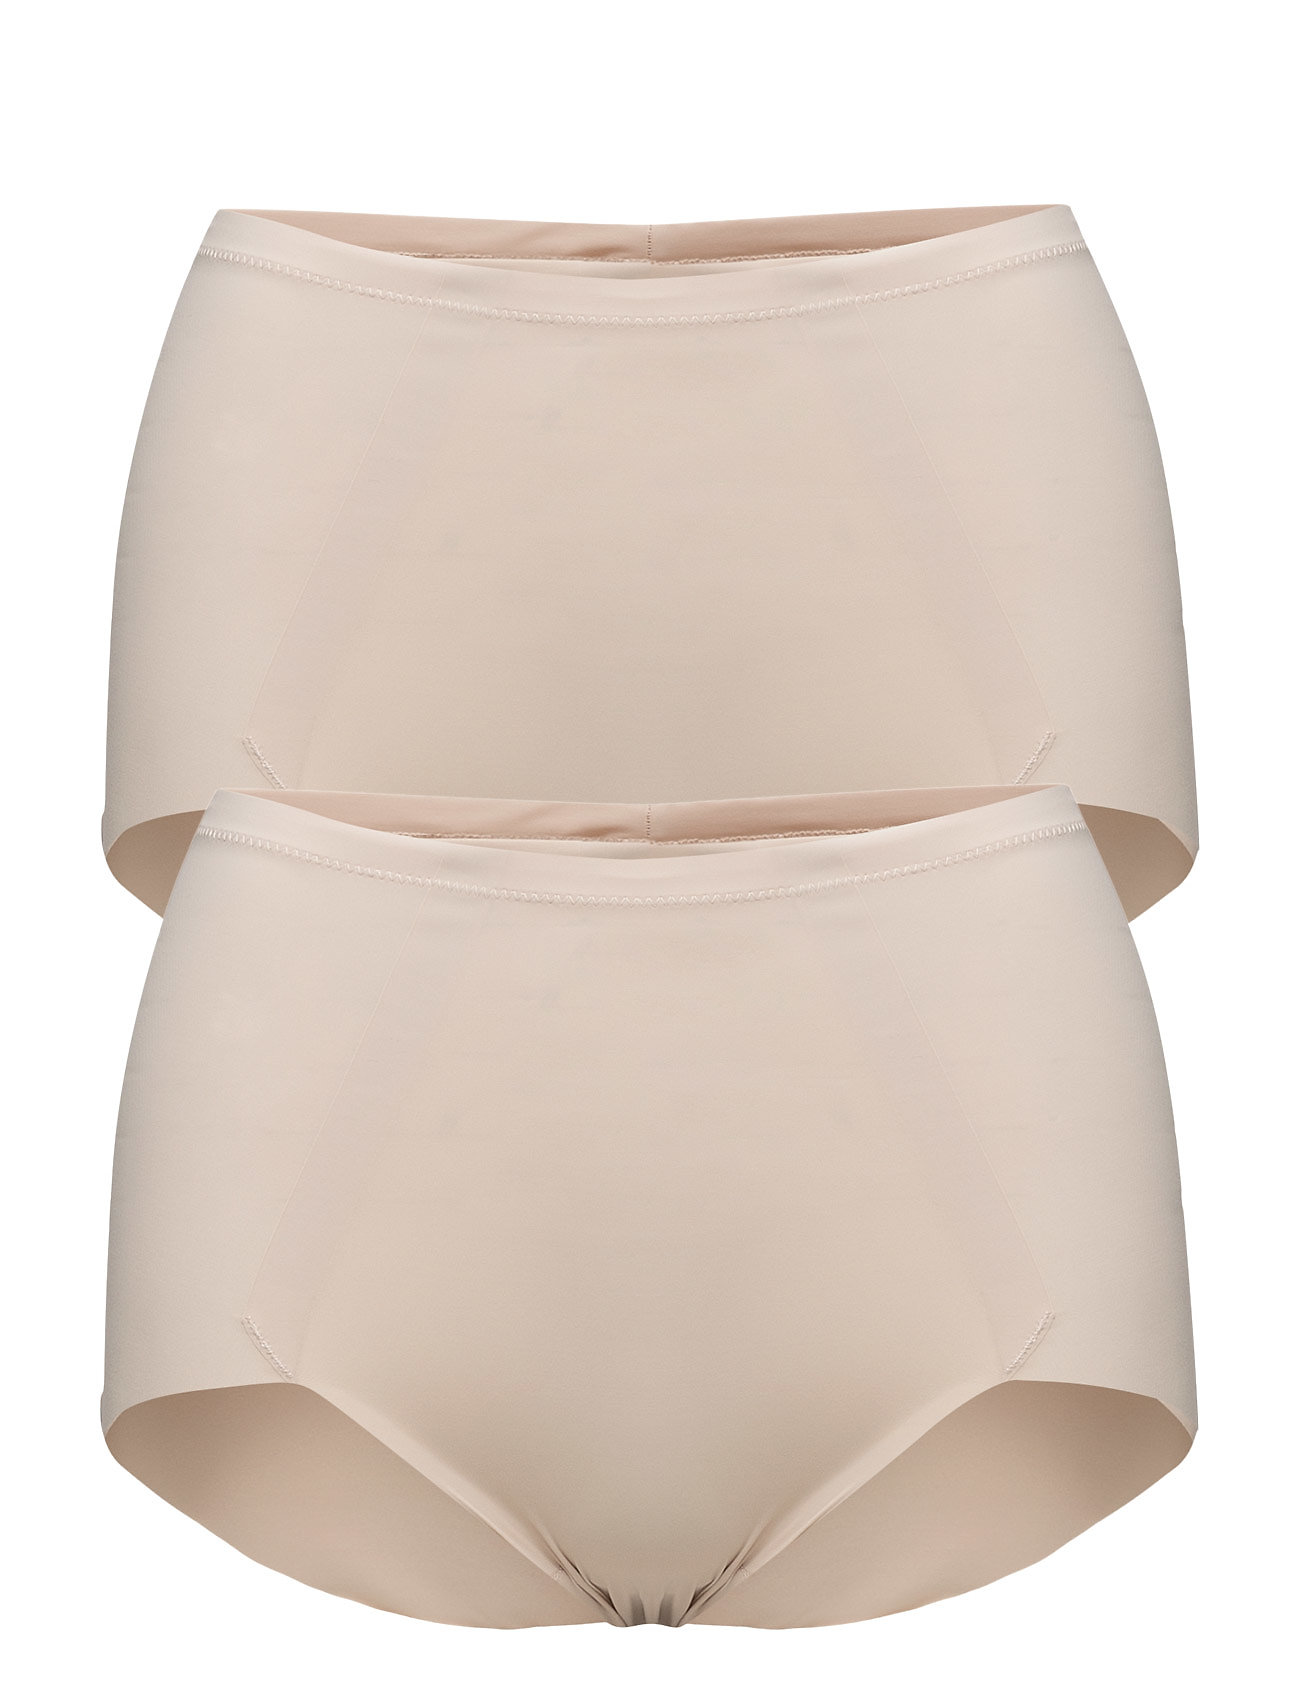 Sleek Smoothers Maidenform Shapewear til Damer i Nøgen